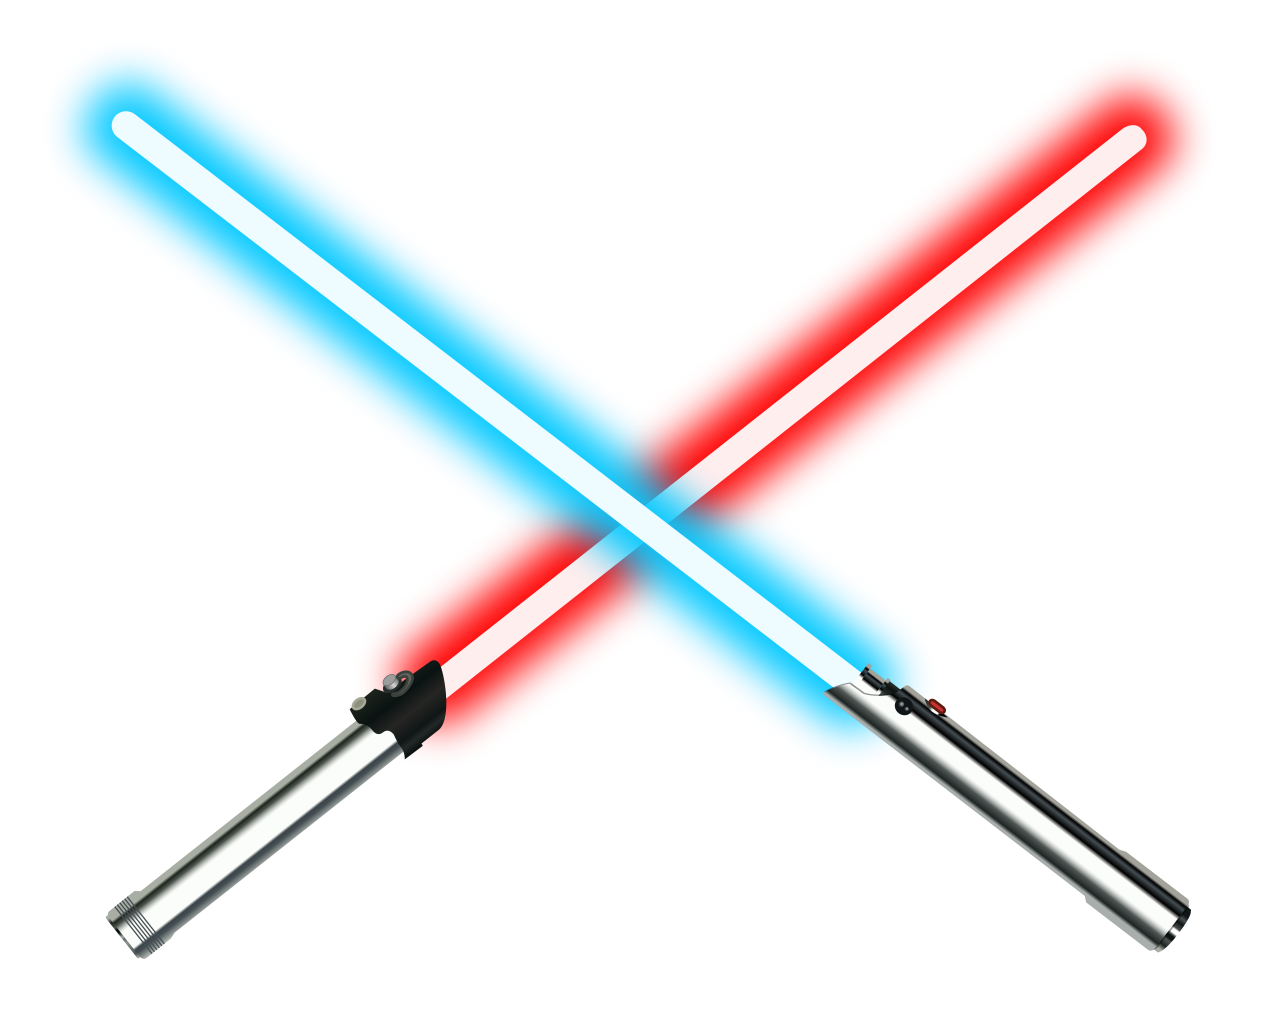 lightsaber svg #1071, Download drawings